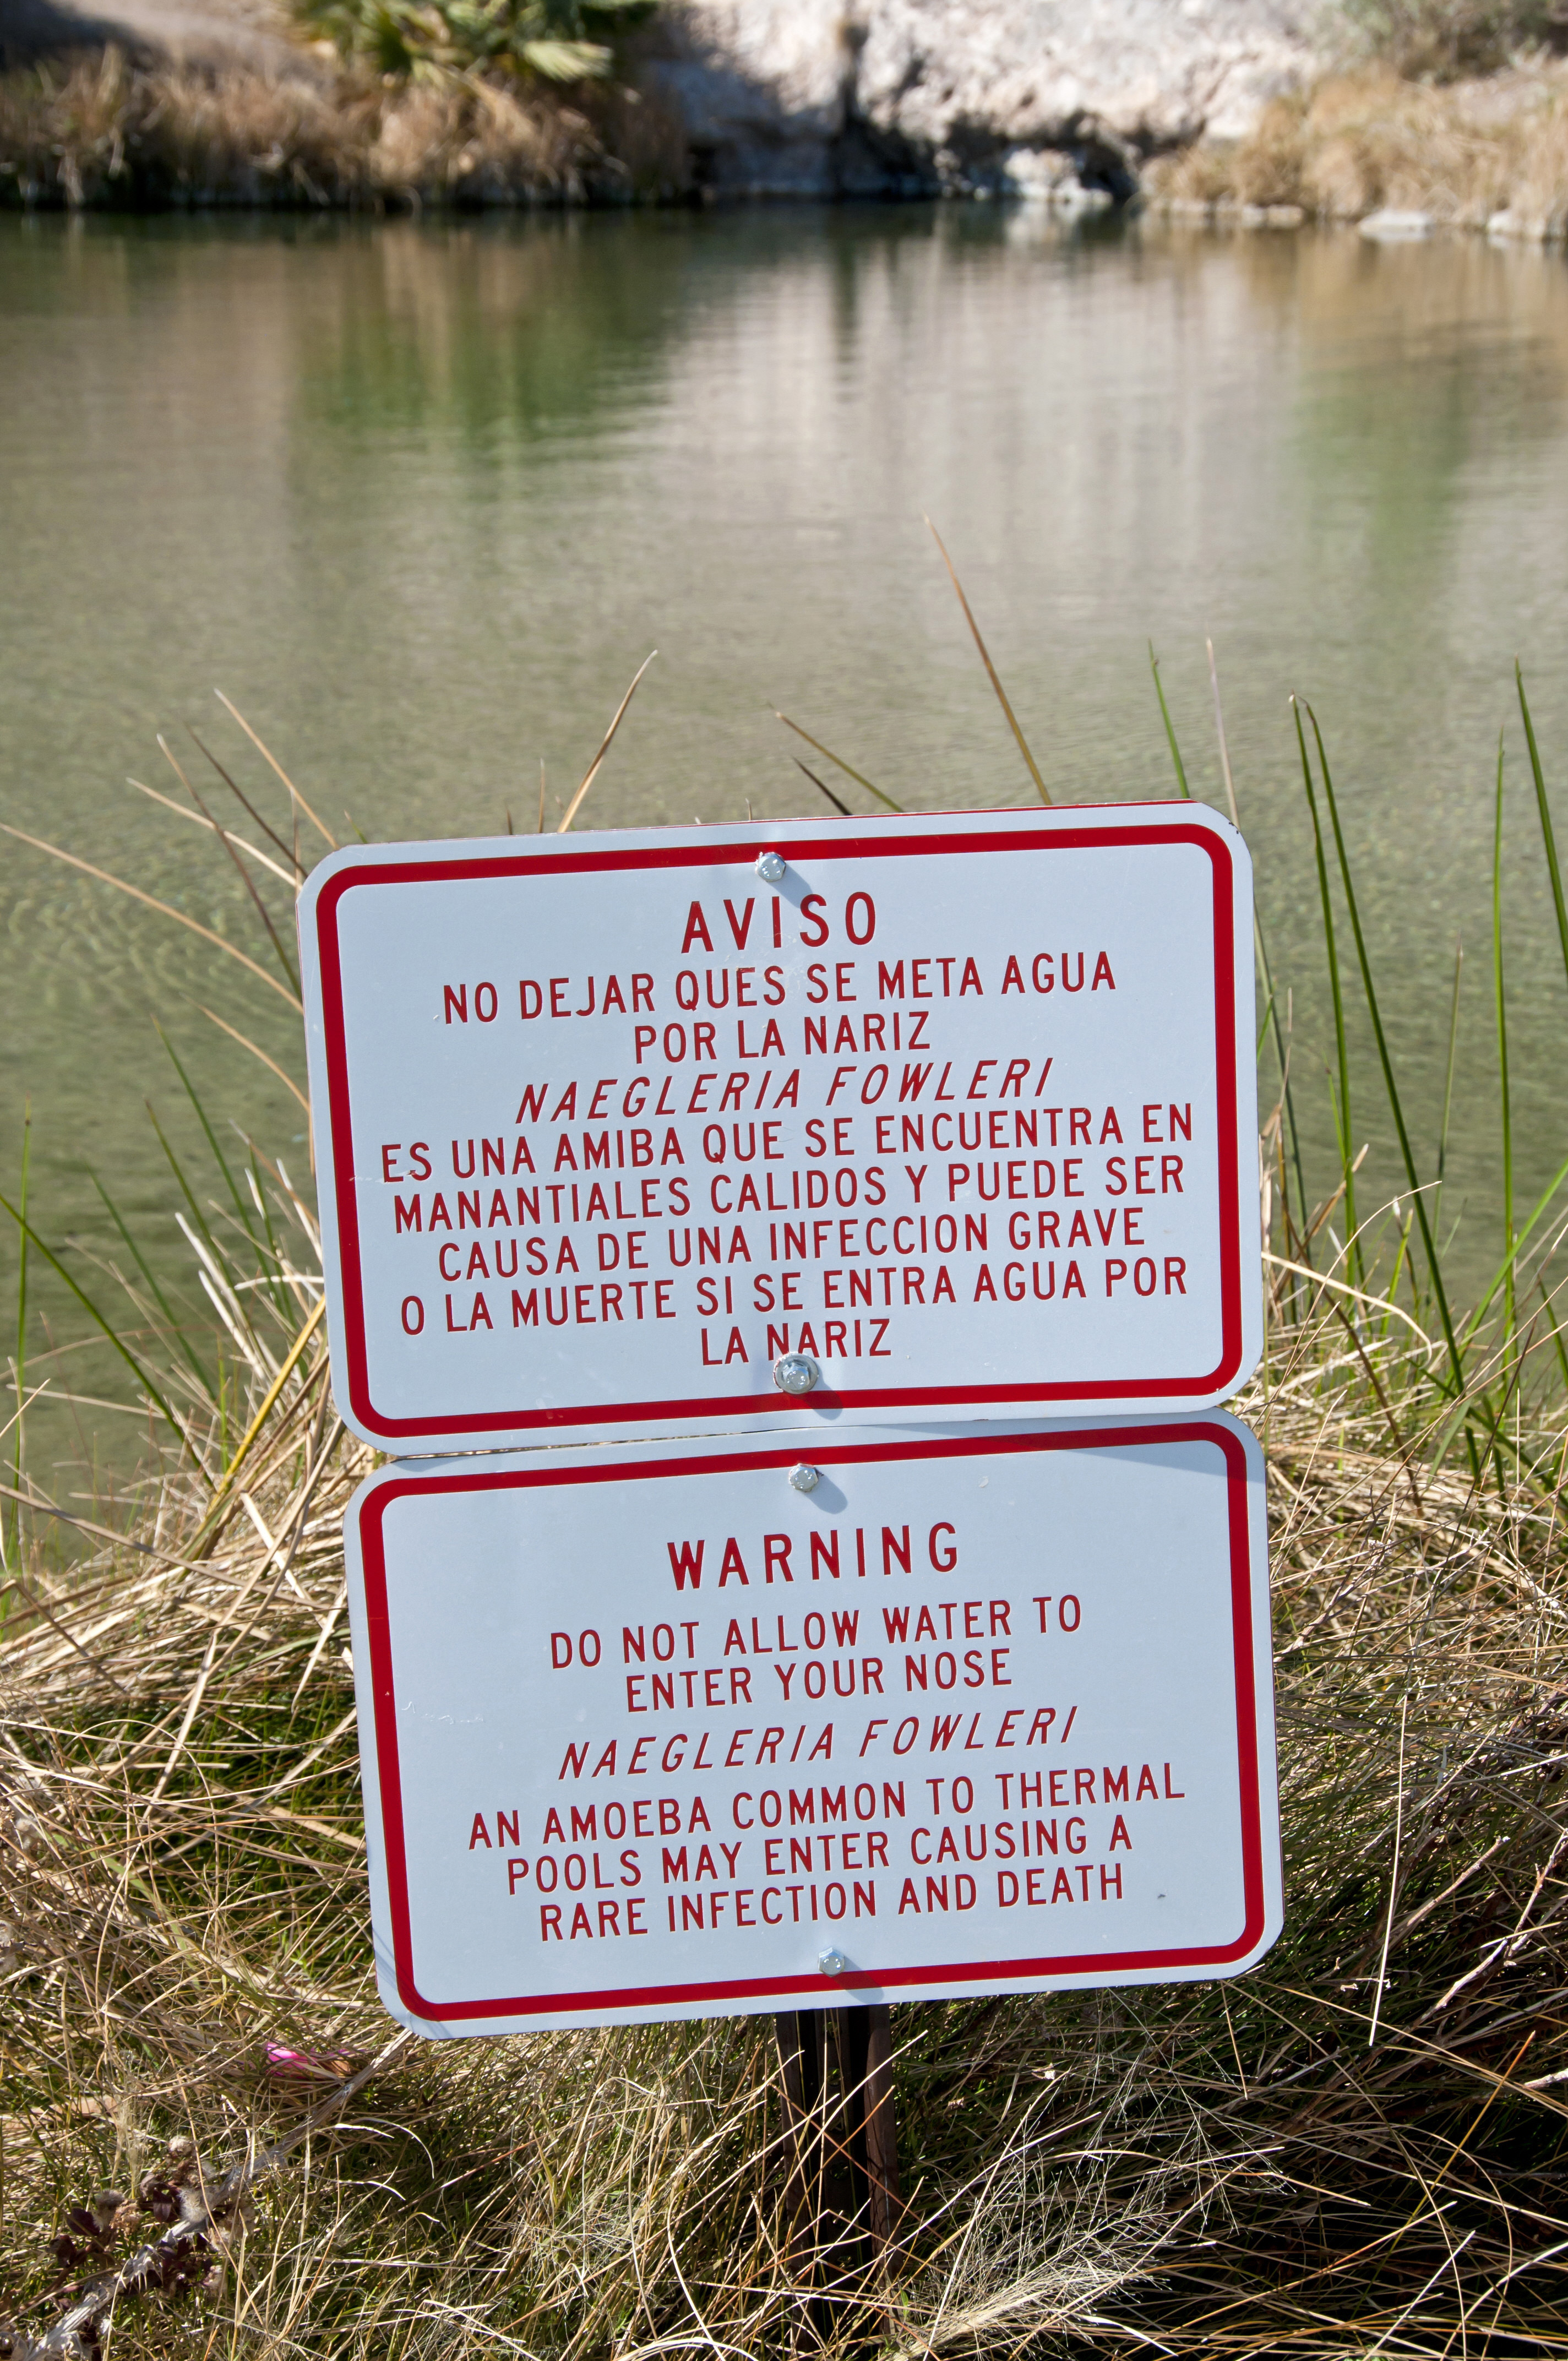 'Do Not Allow Water To Enter Your Nose' Amoeba (Naegleria fowleri) warning sign at thermal pool, Roger's Spring, Lake Mead, Nevada, U.S.A.